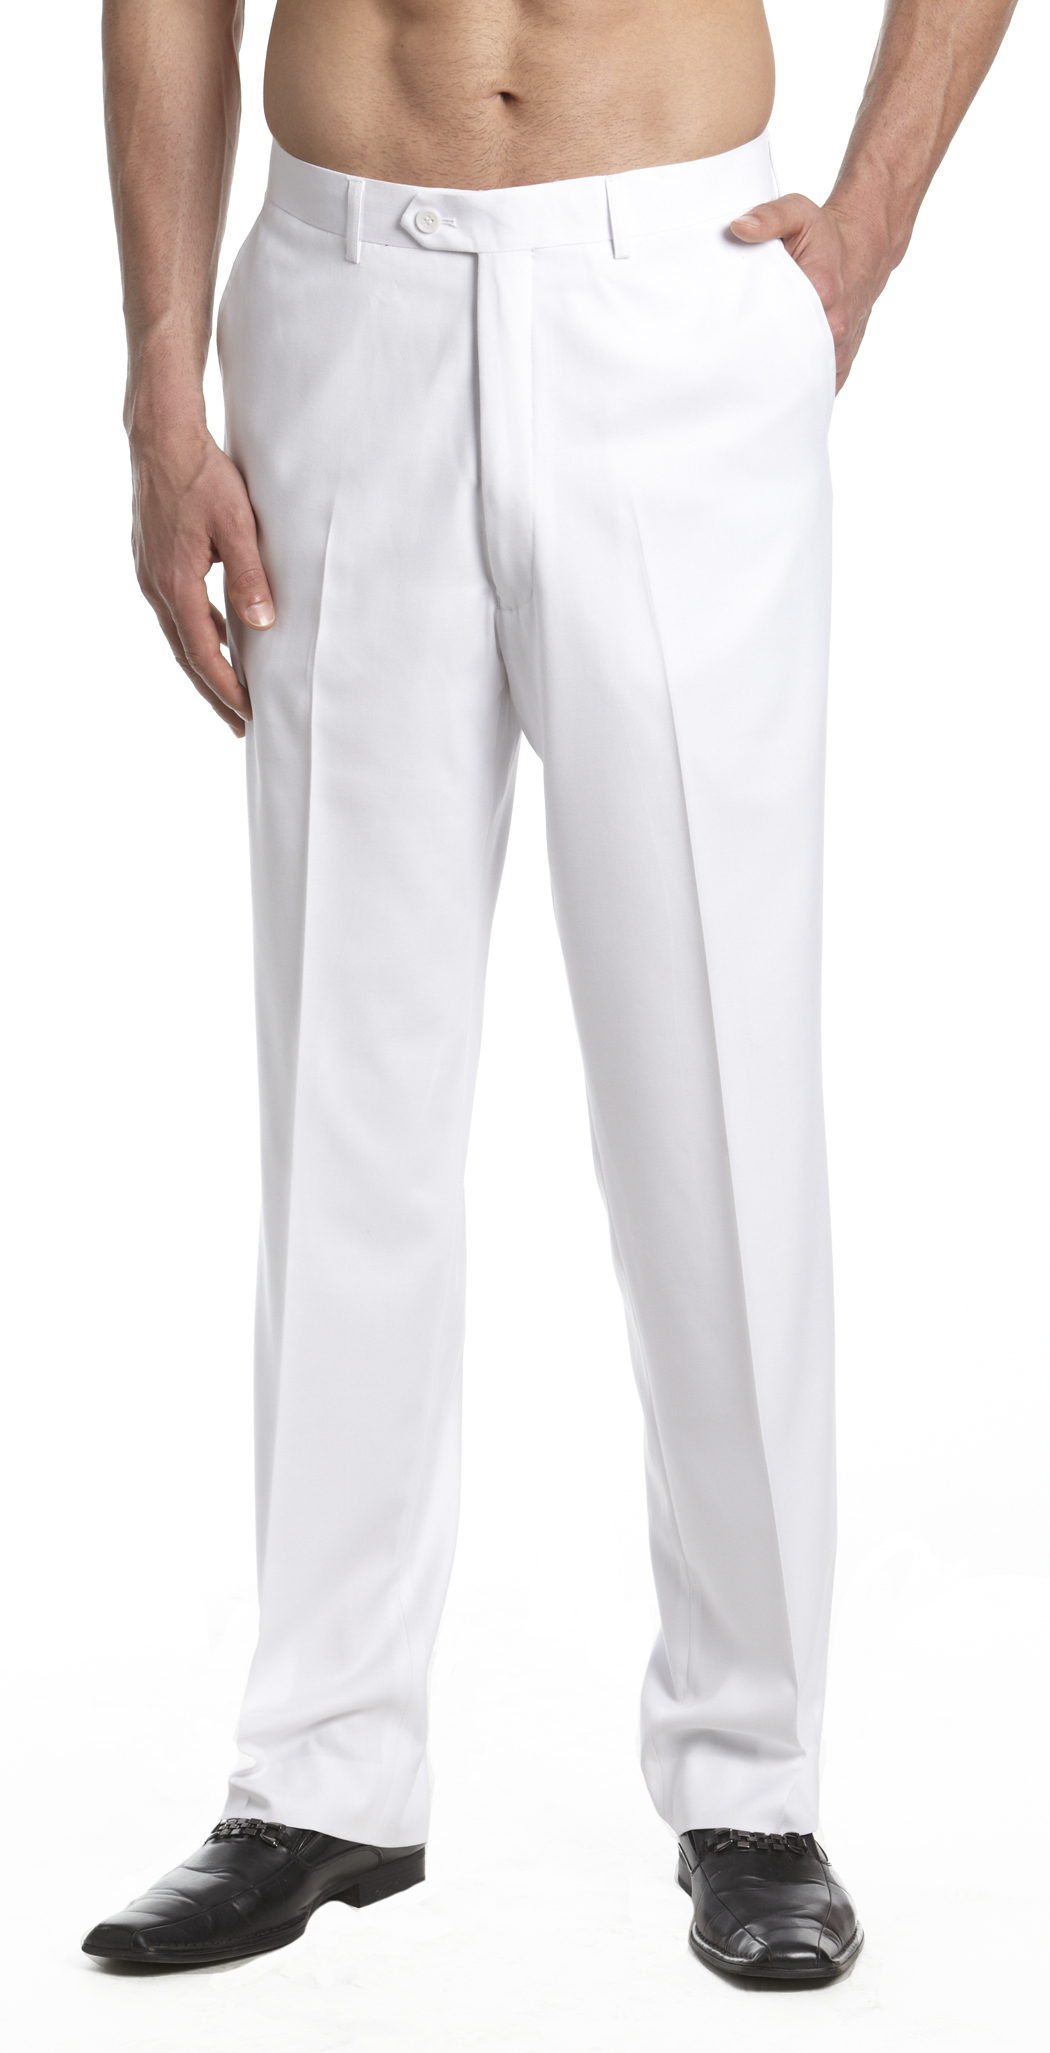 Shop for Men's Clearance Dress Pants & Slacks at jomp16.tk Browse clearance trousers for men from Jos. A Bank. FREE shipping on orders over $